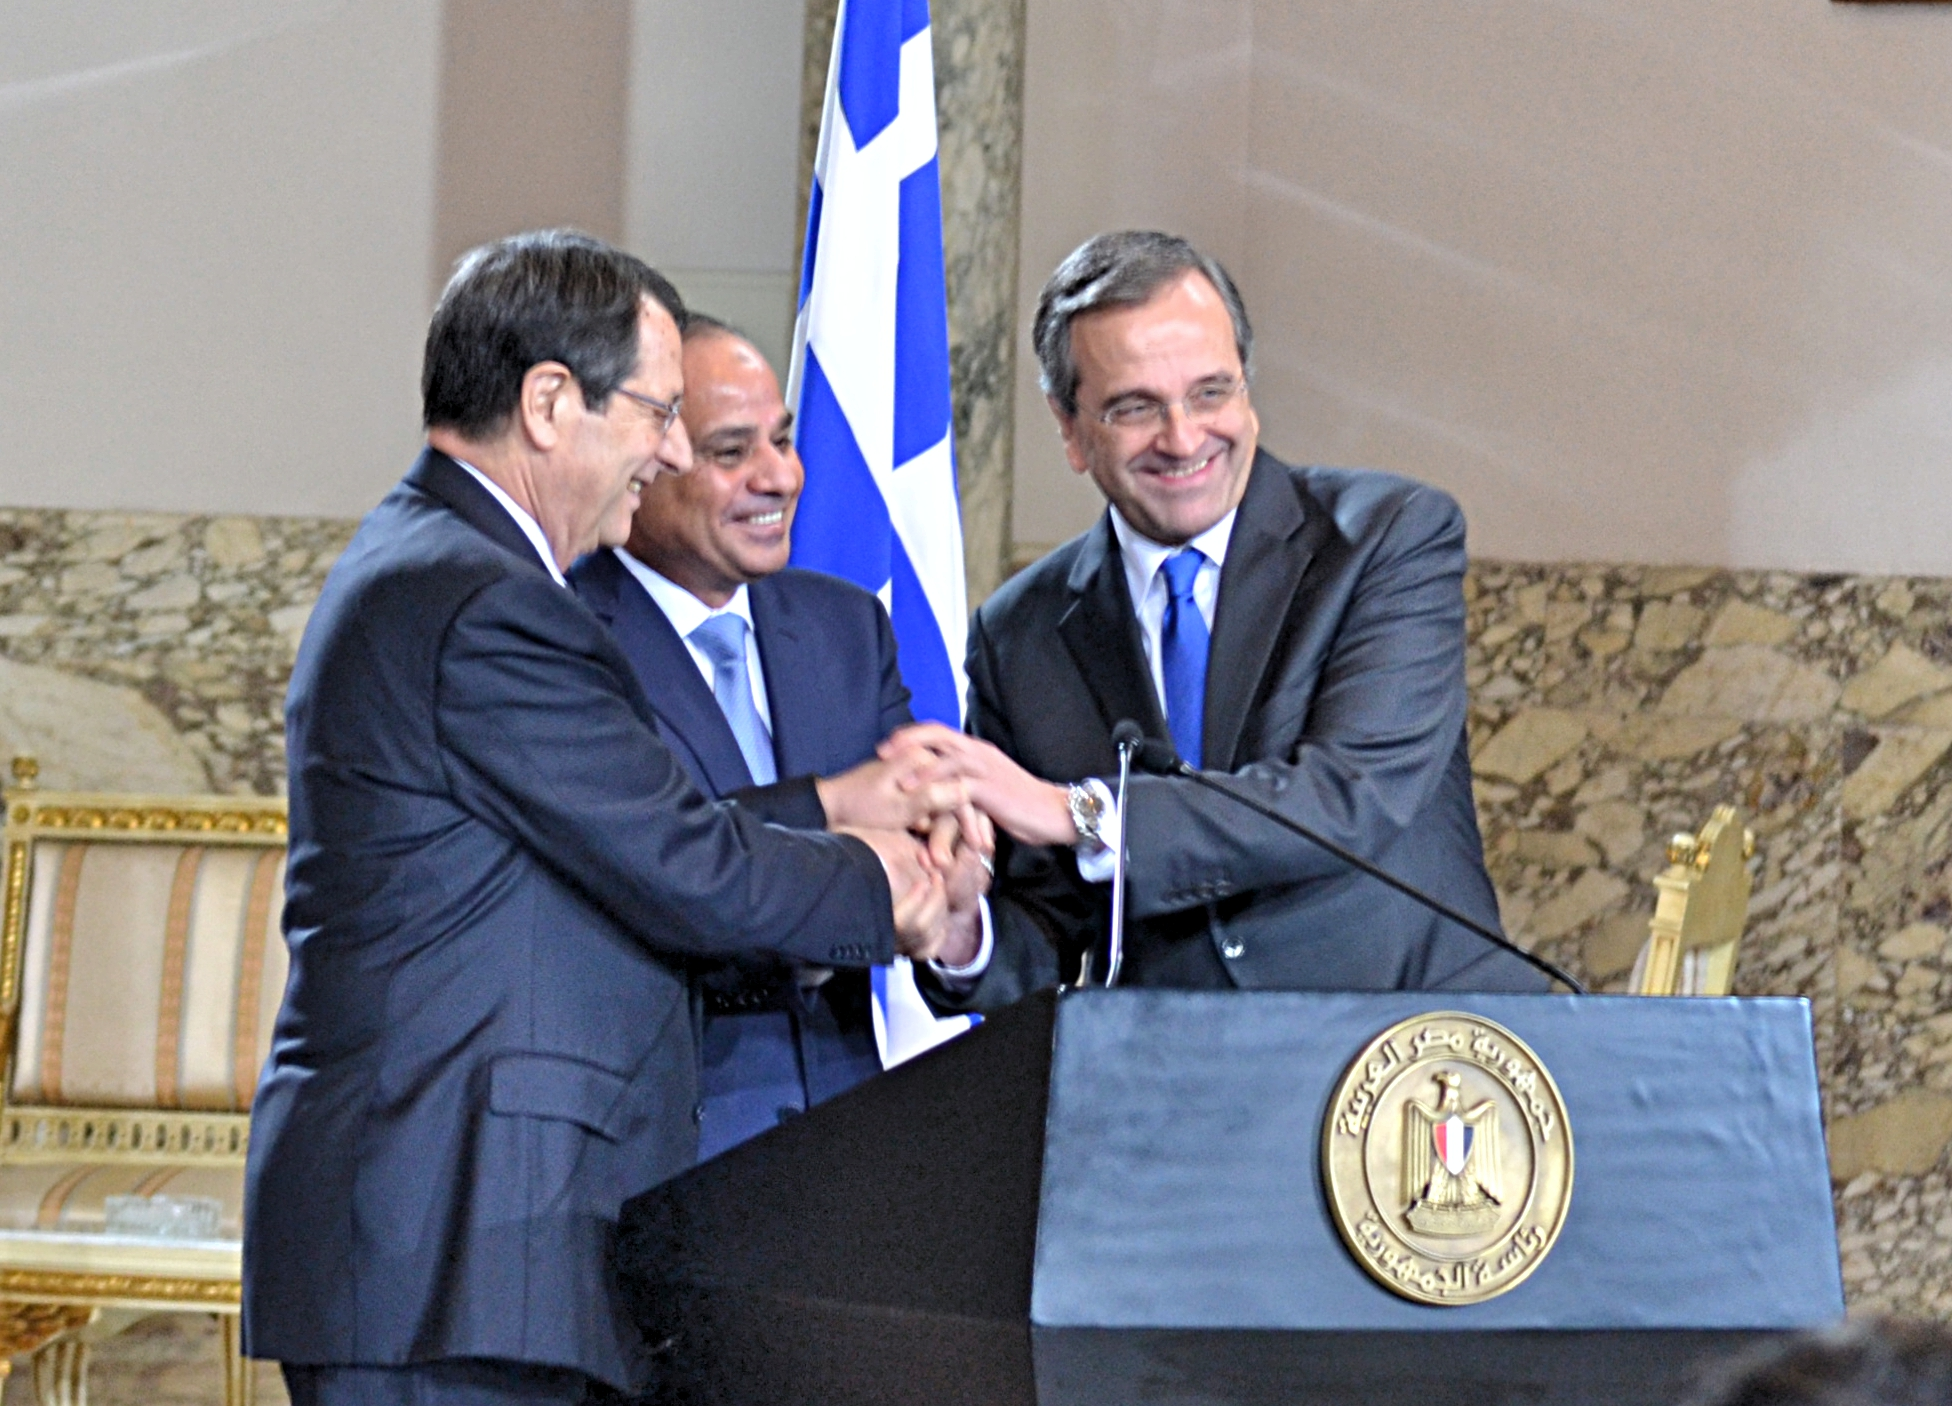 Op/Ed: Reading between the lines of the trilateral cooperation between Greece-Cyprus-Egypt